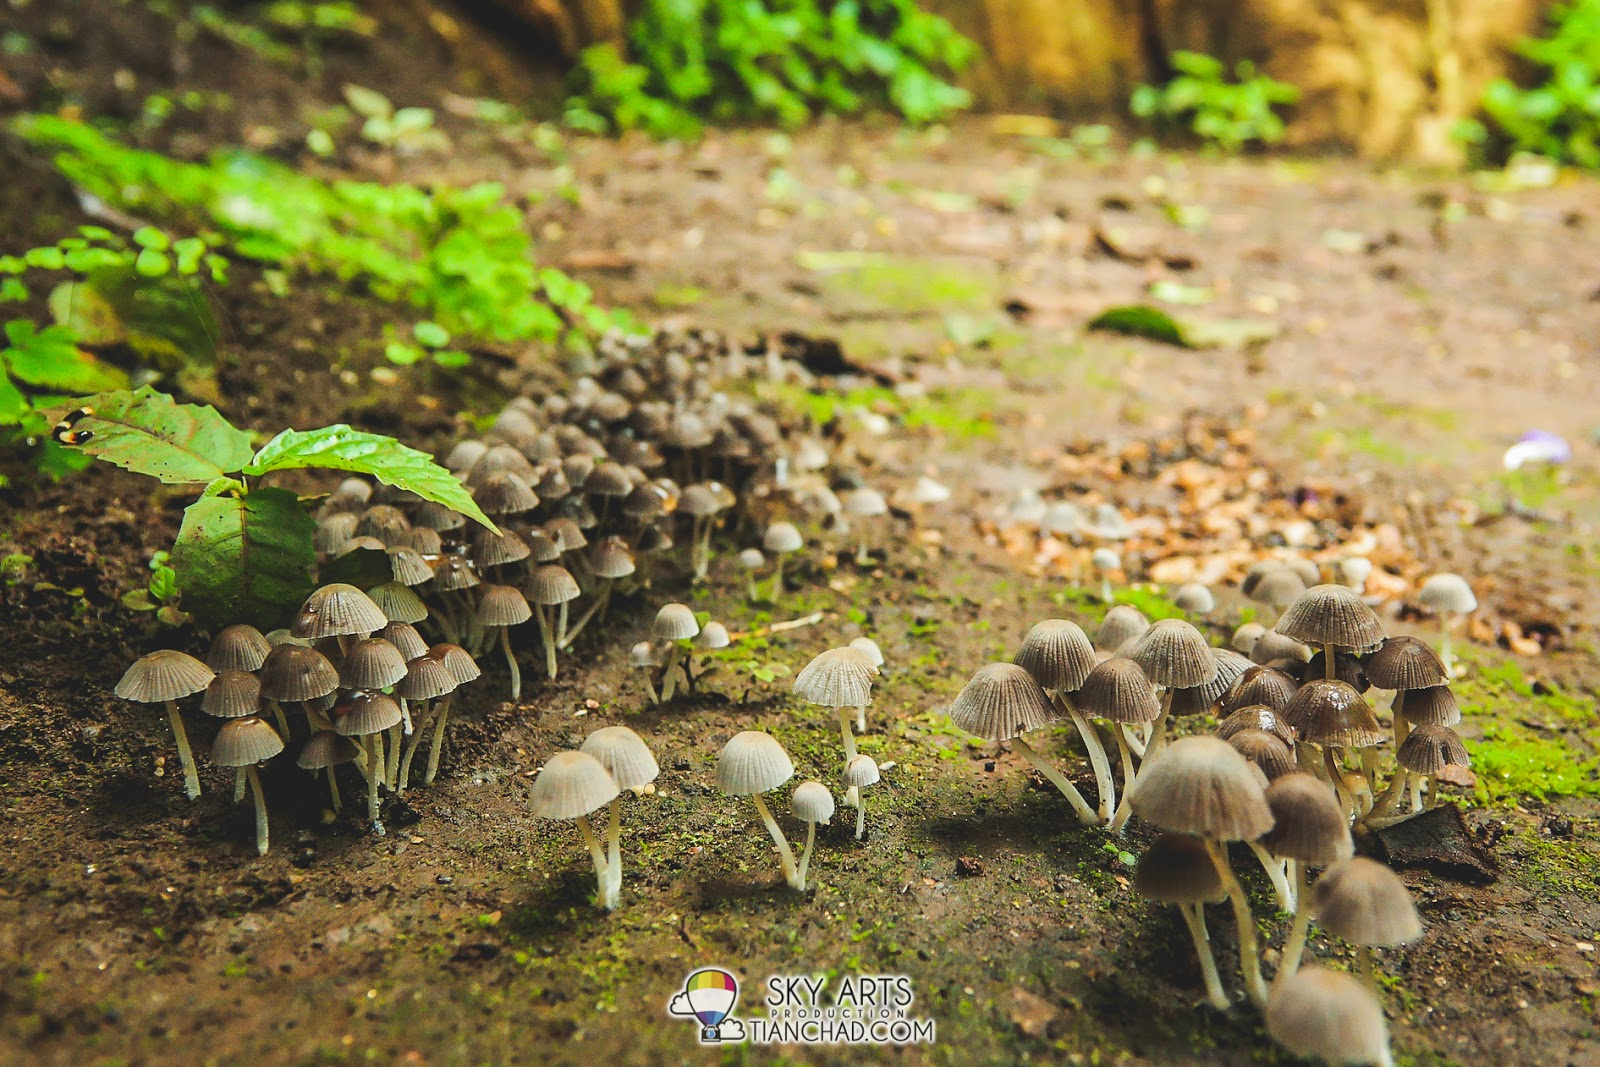 Cute mushrooms blooming after rain @ Qing Xin Ling